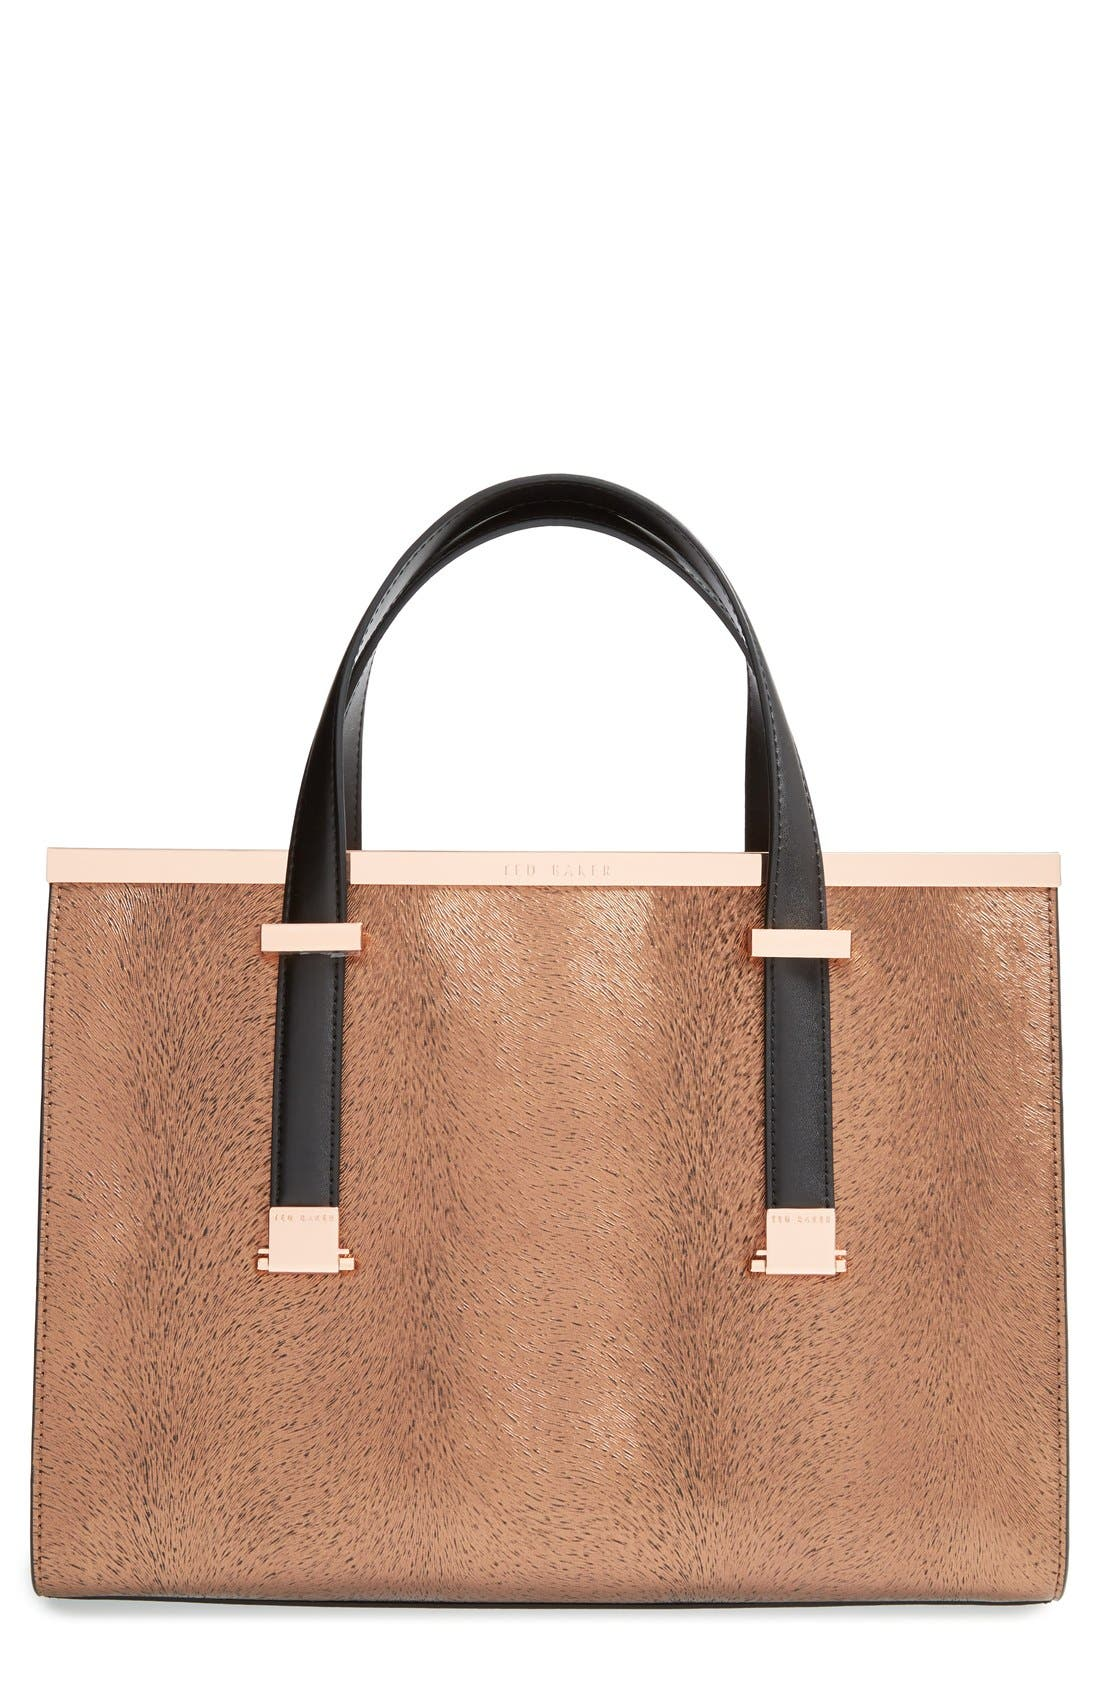 Alternate Image 1 Selected - Ted Baker London 'Marrpel' Textured Metal Tote